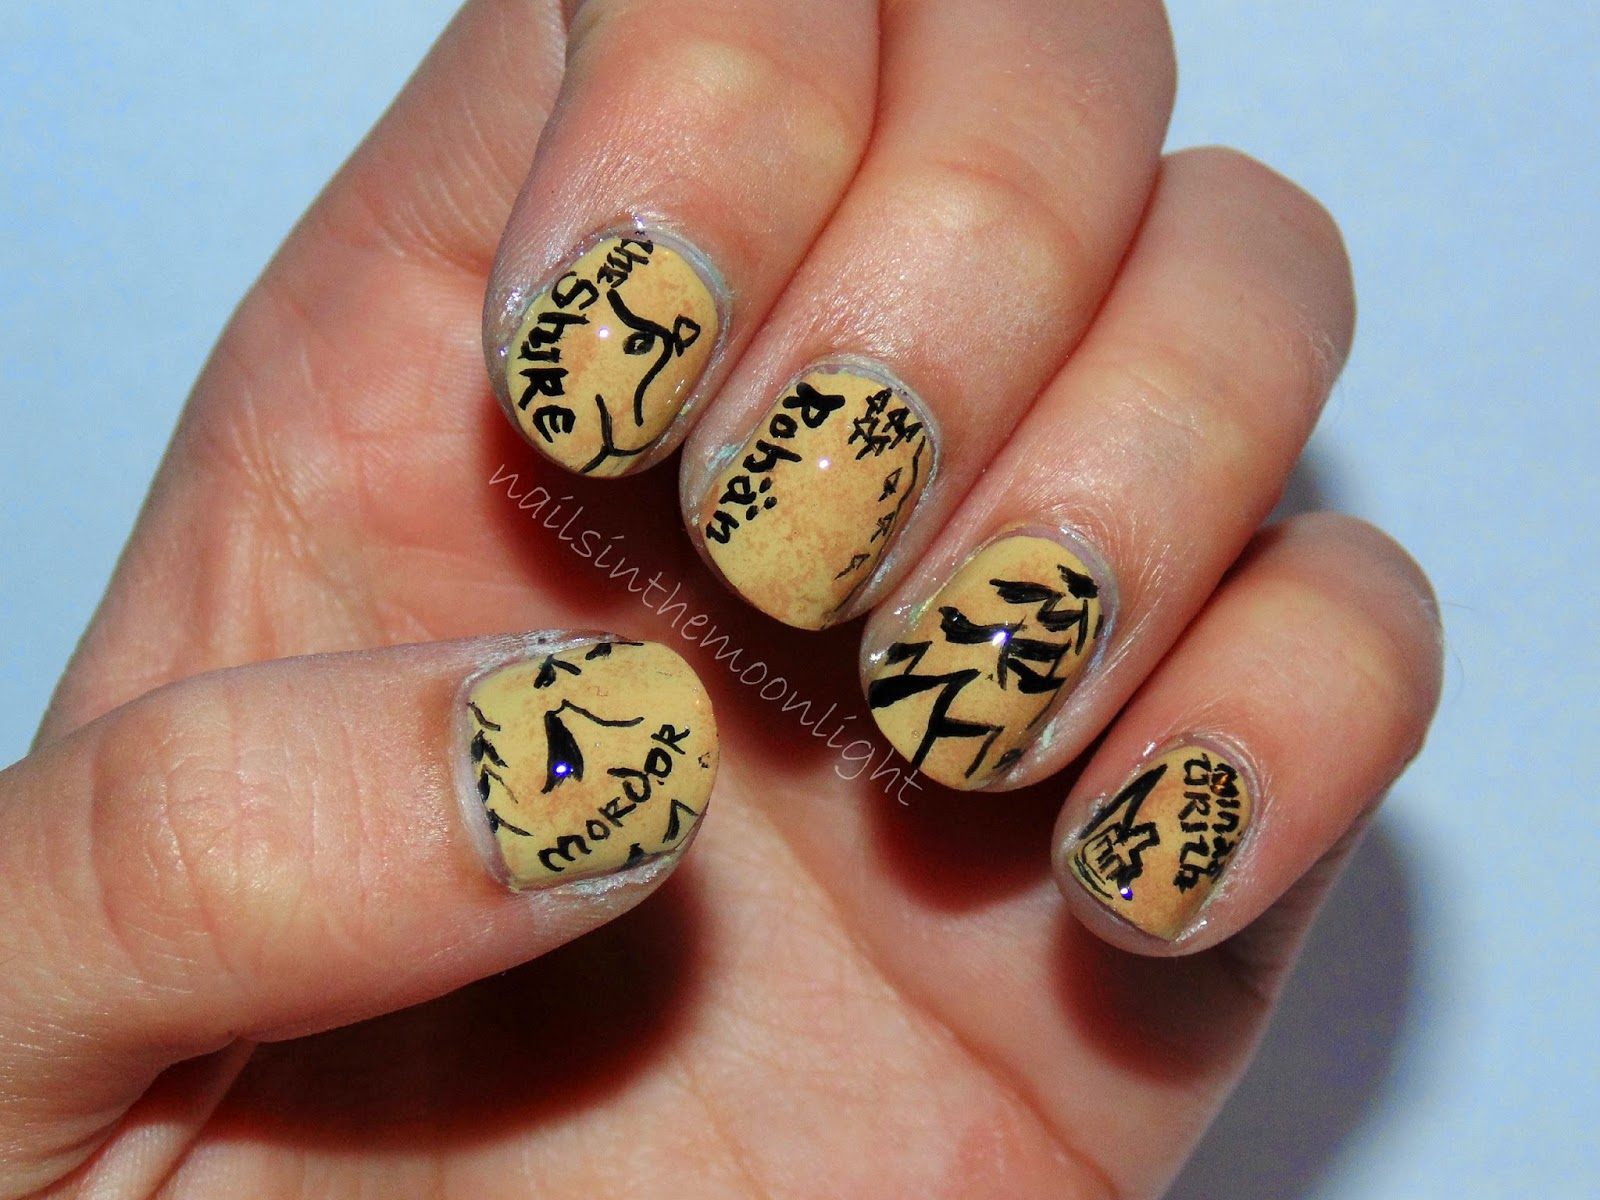 Fandom June Day 13: Lord of the Rings/The Hobbit | nailsinthemoonlight